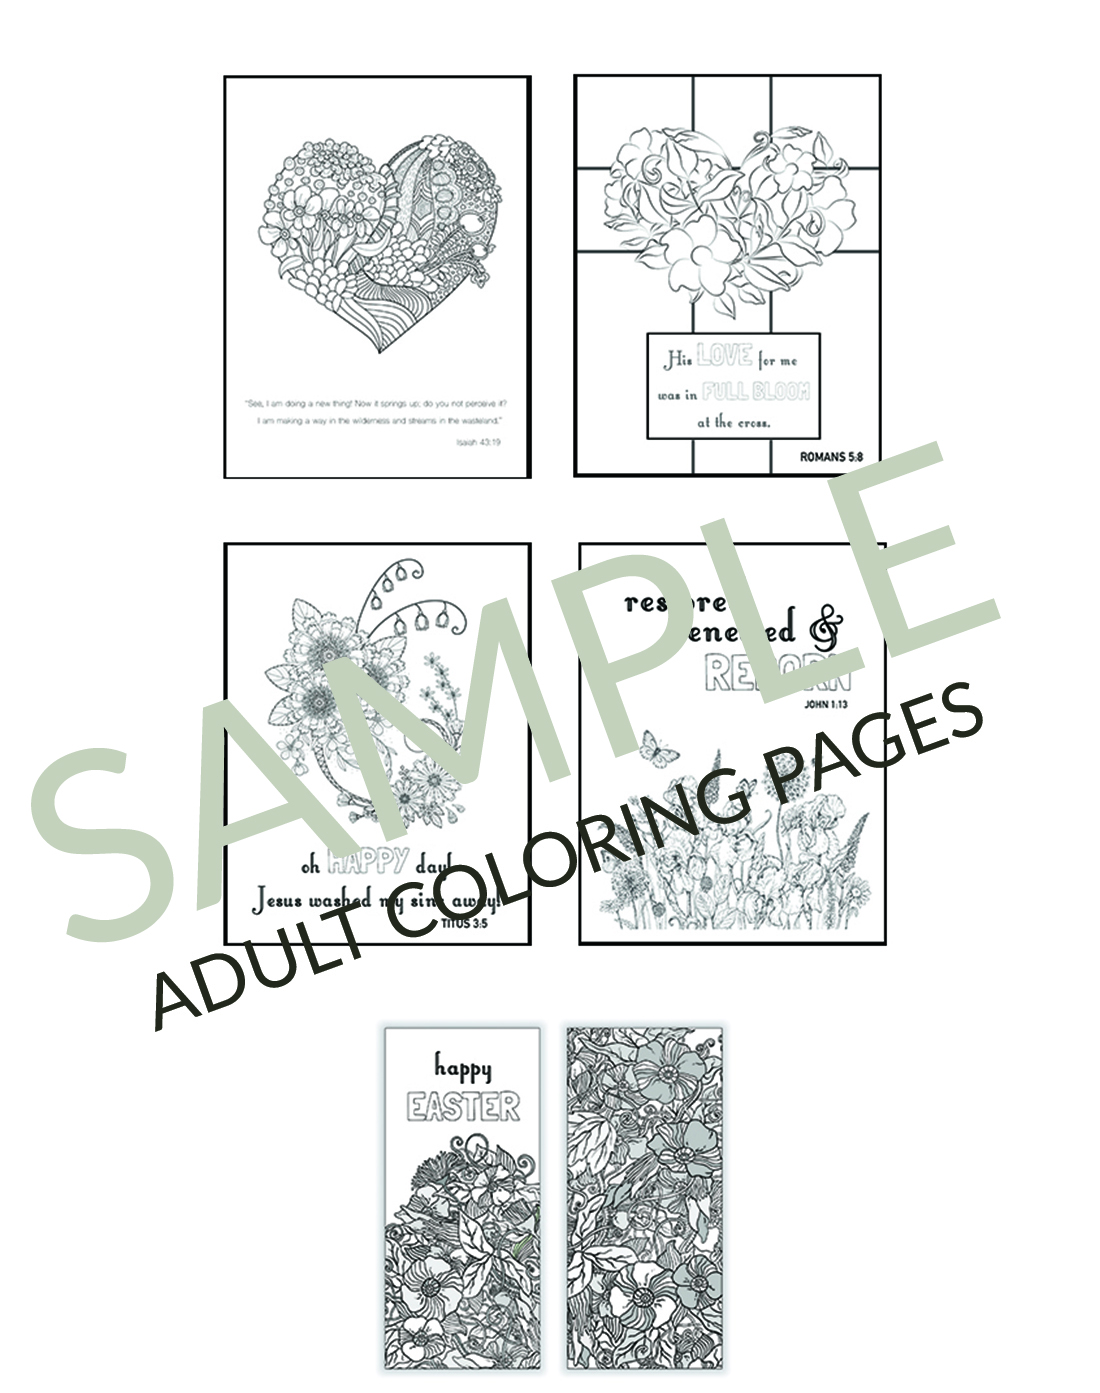 easter coloring pages printable | printable easter coloring pages | easter colouring pages | christian easter coloring pages | easter coloring pages print | easter crafts kids | Easter games kids | easter coloring pages